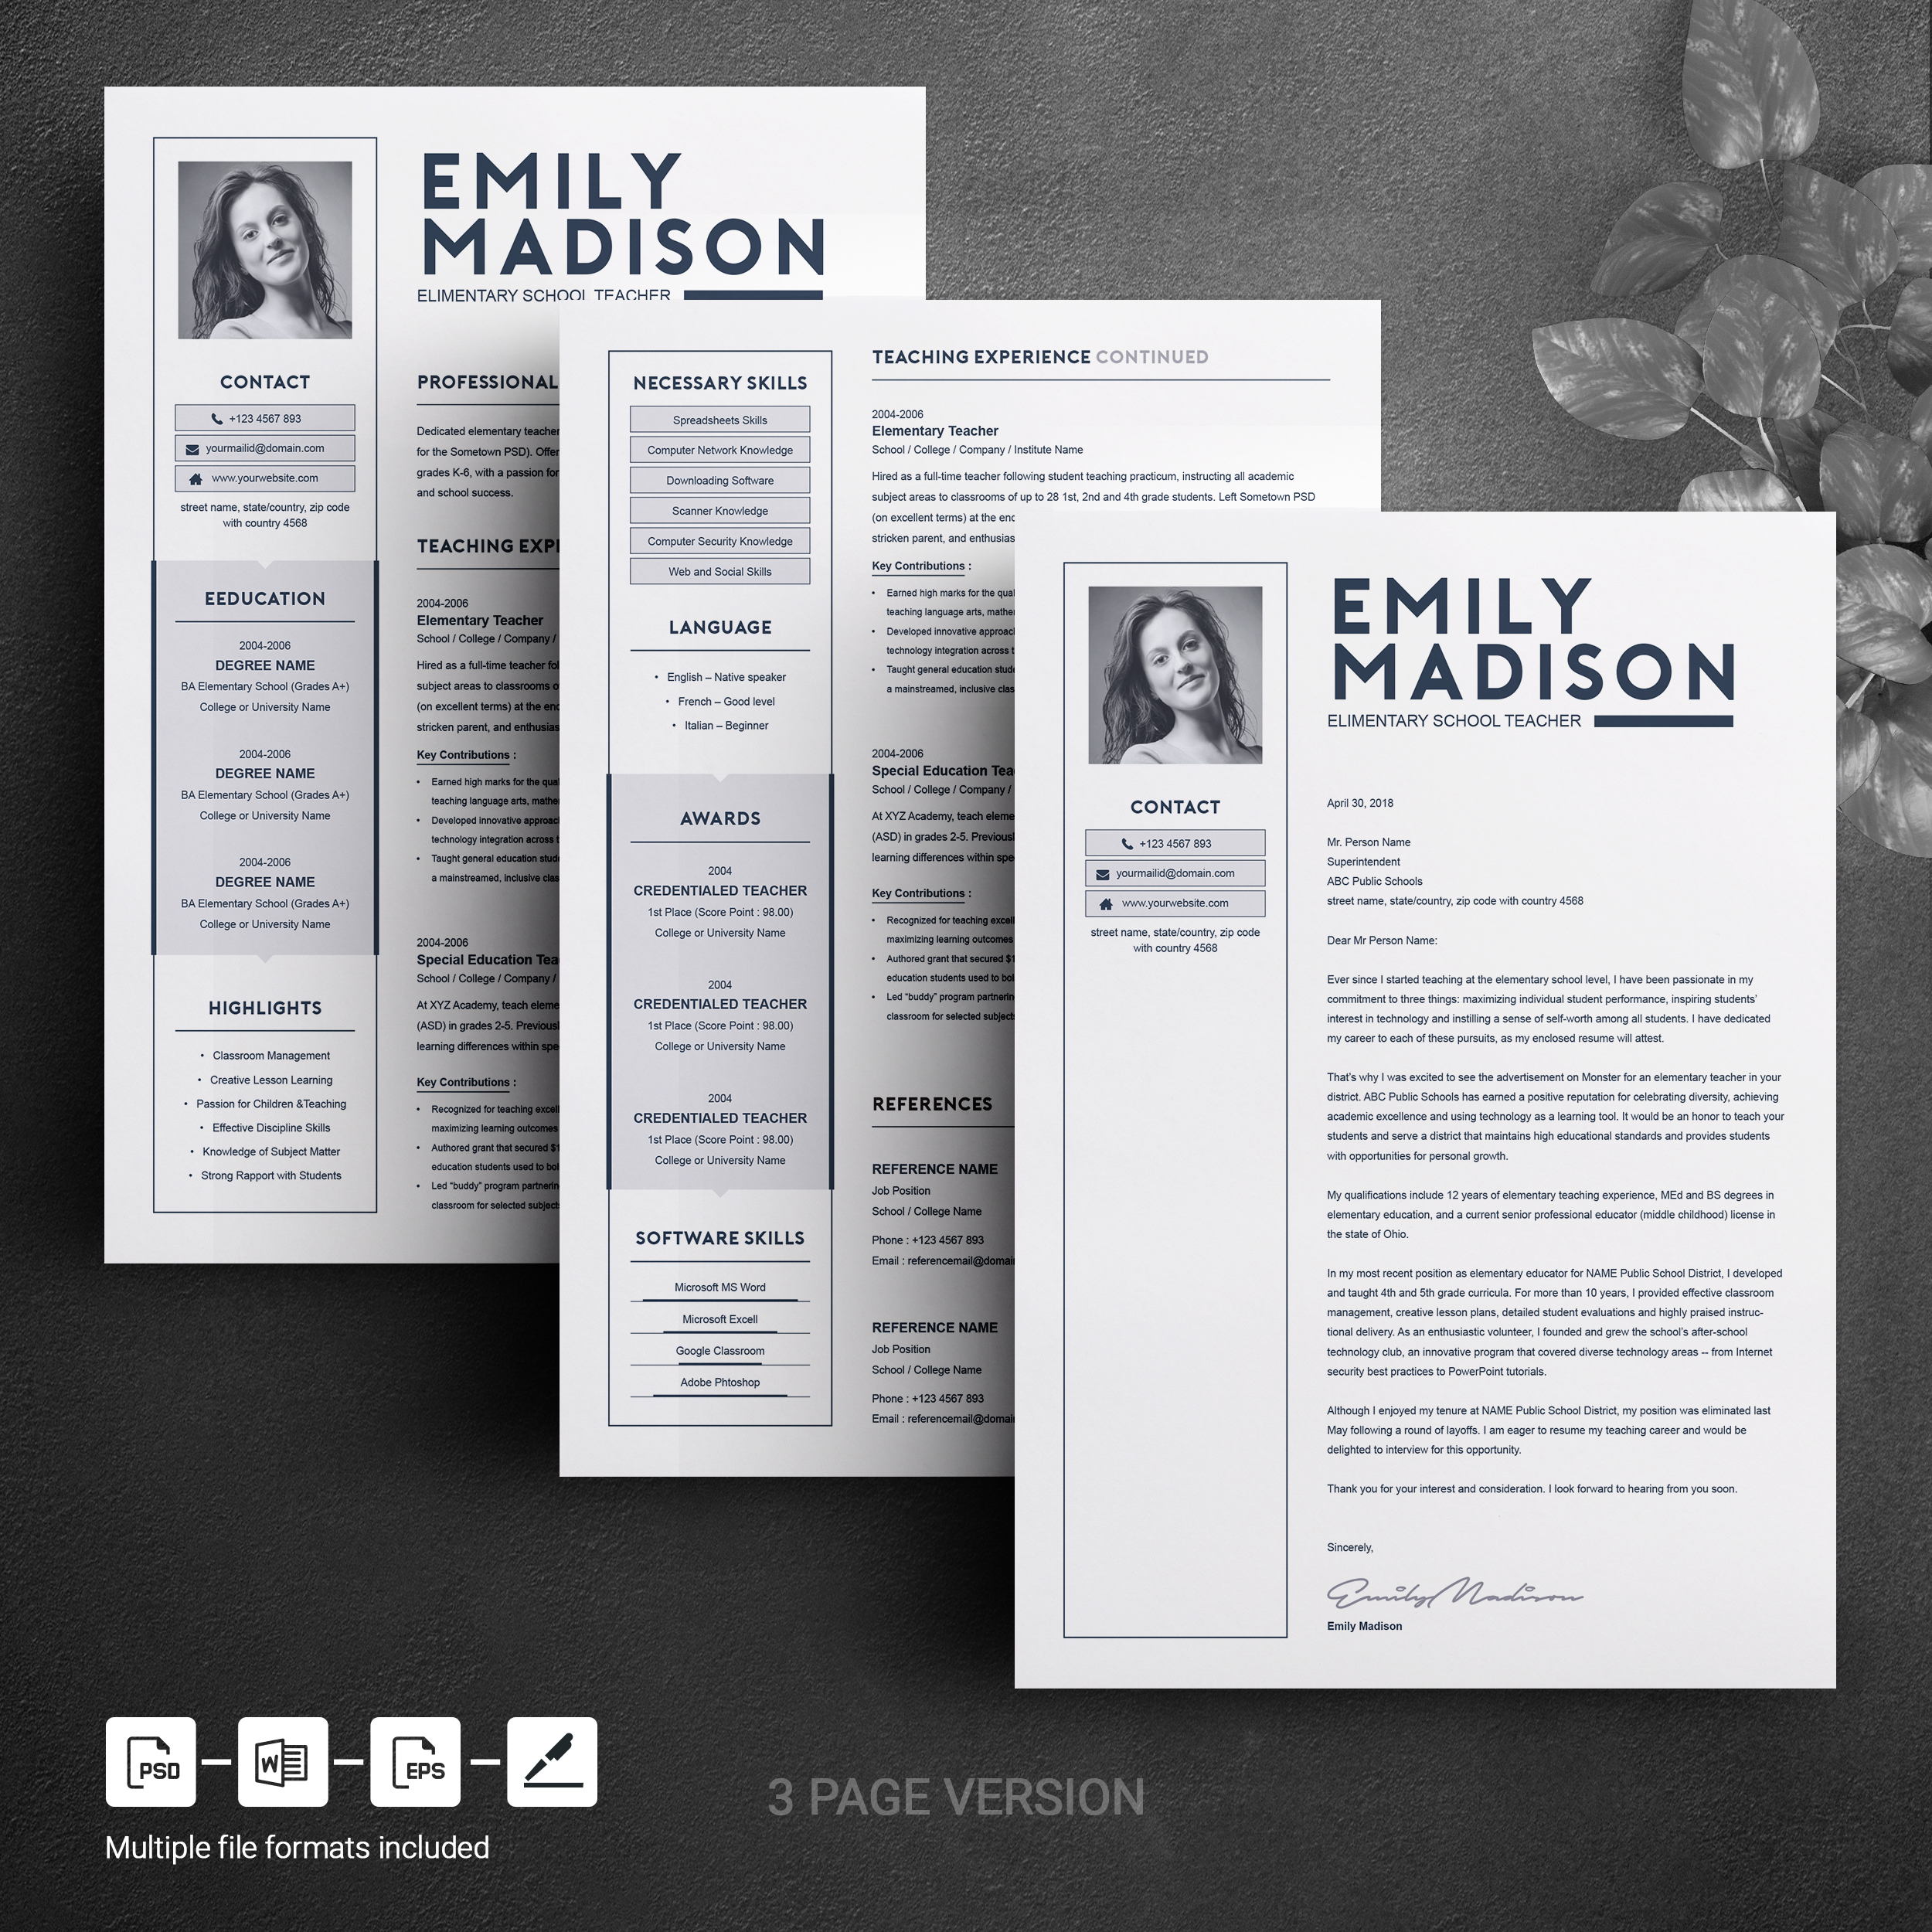 Teacher Resume Template Free from pixelify.nyc3.cdn.digitaloceanspaces.com